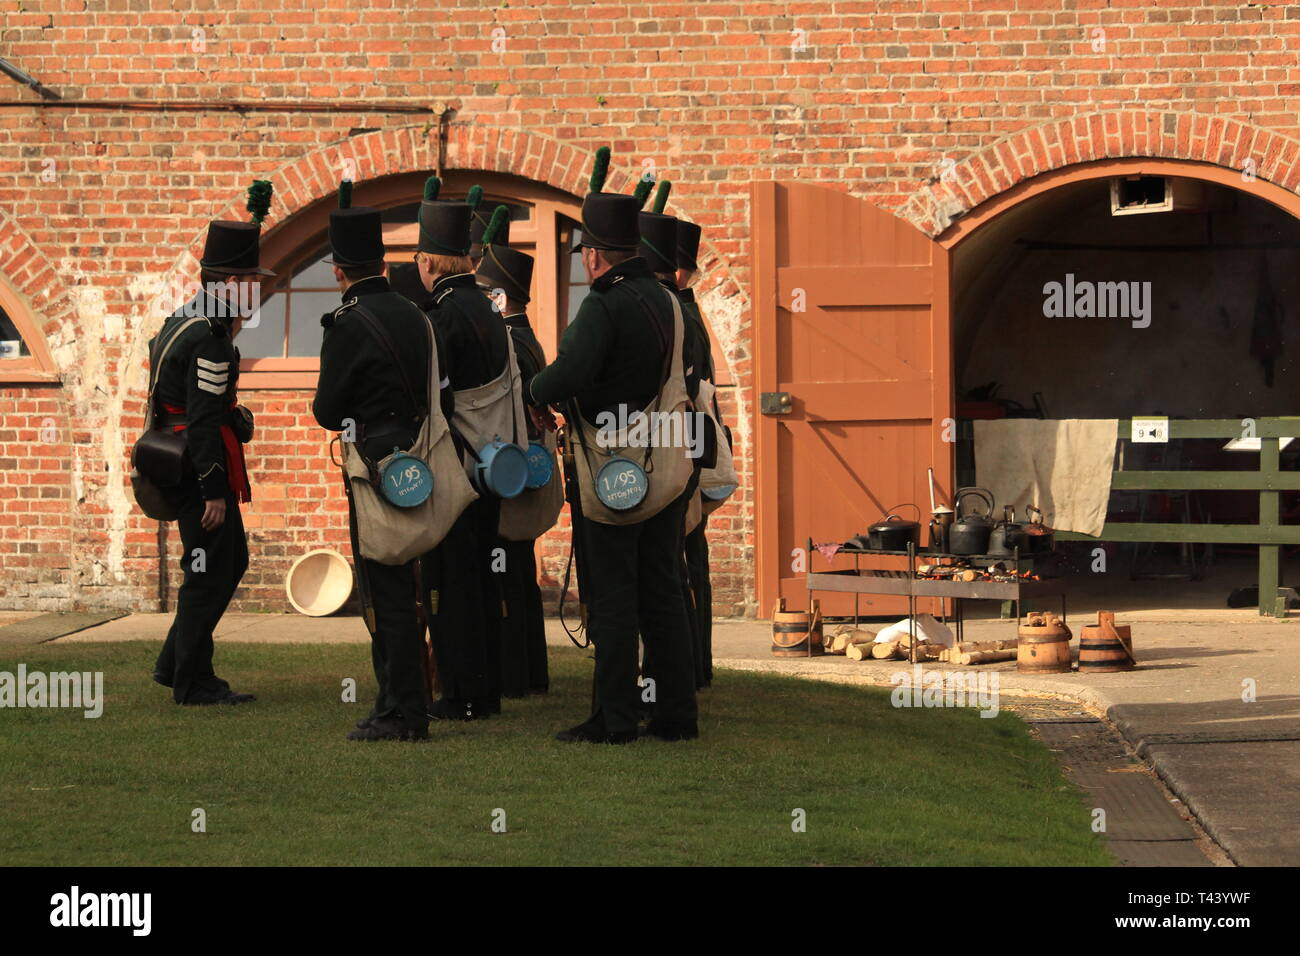 Re-enactment staged by the 95th Riflemen (Napoleonic era) Living History Society in Essex, UK. - Stock Image